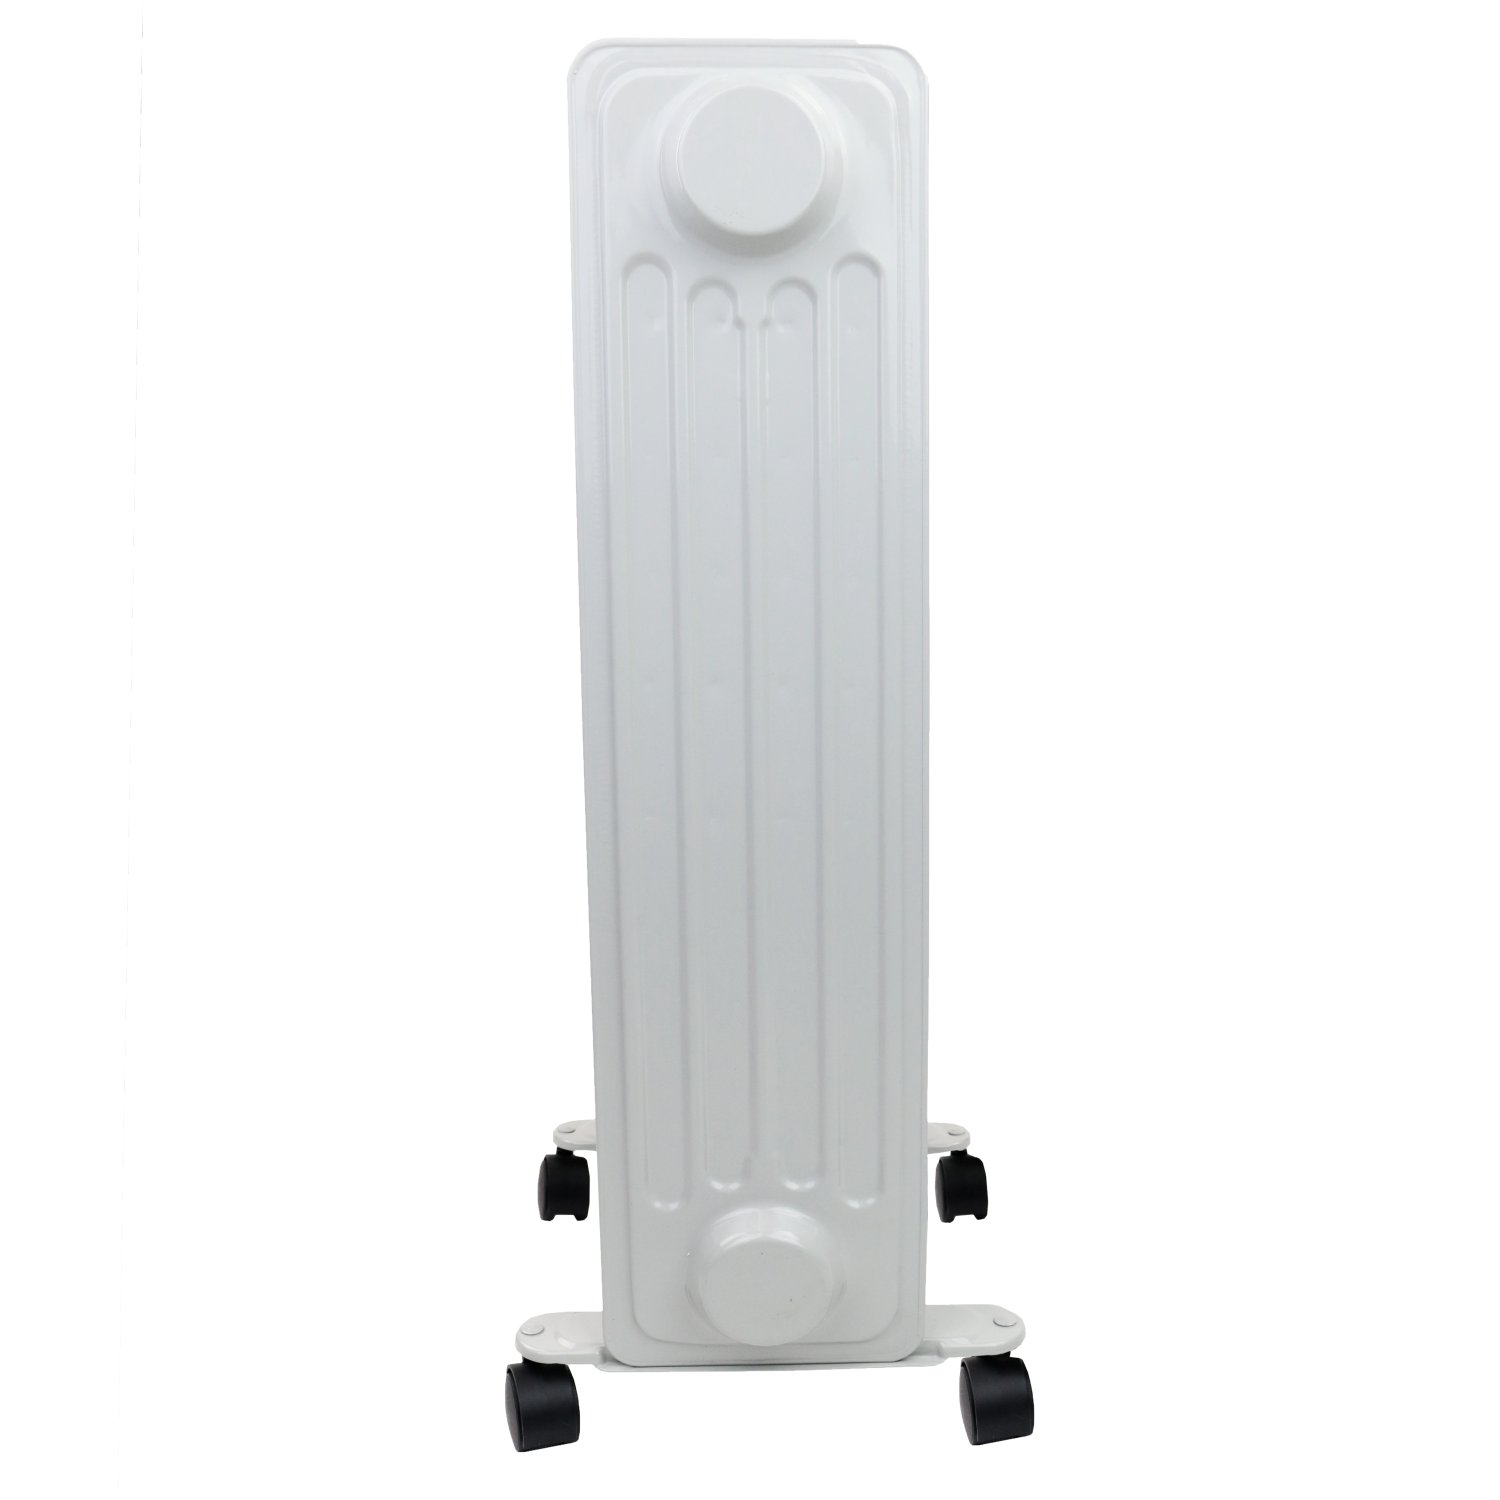 1000W 5 Fin Portable Oil Filled Radiator Electric Heater ...